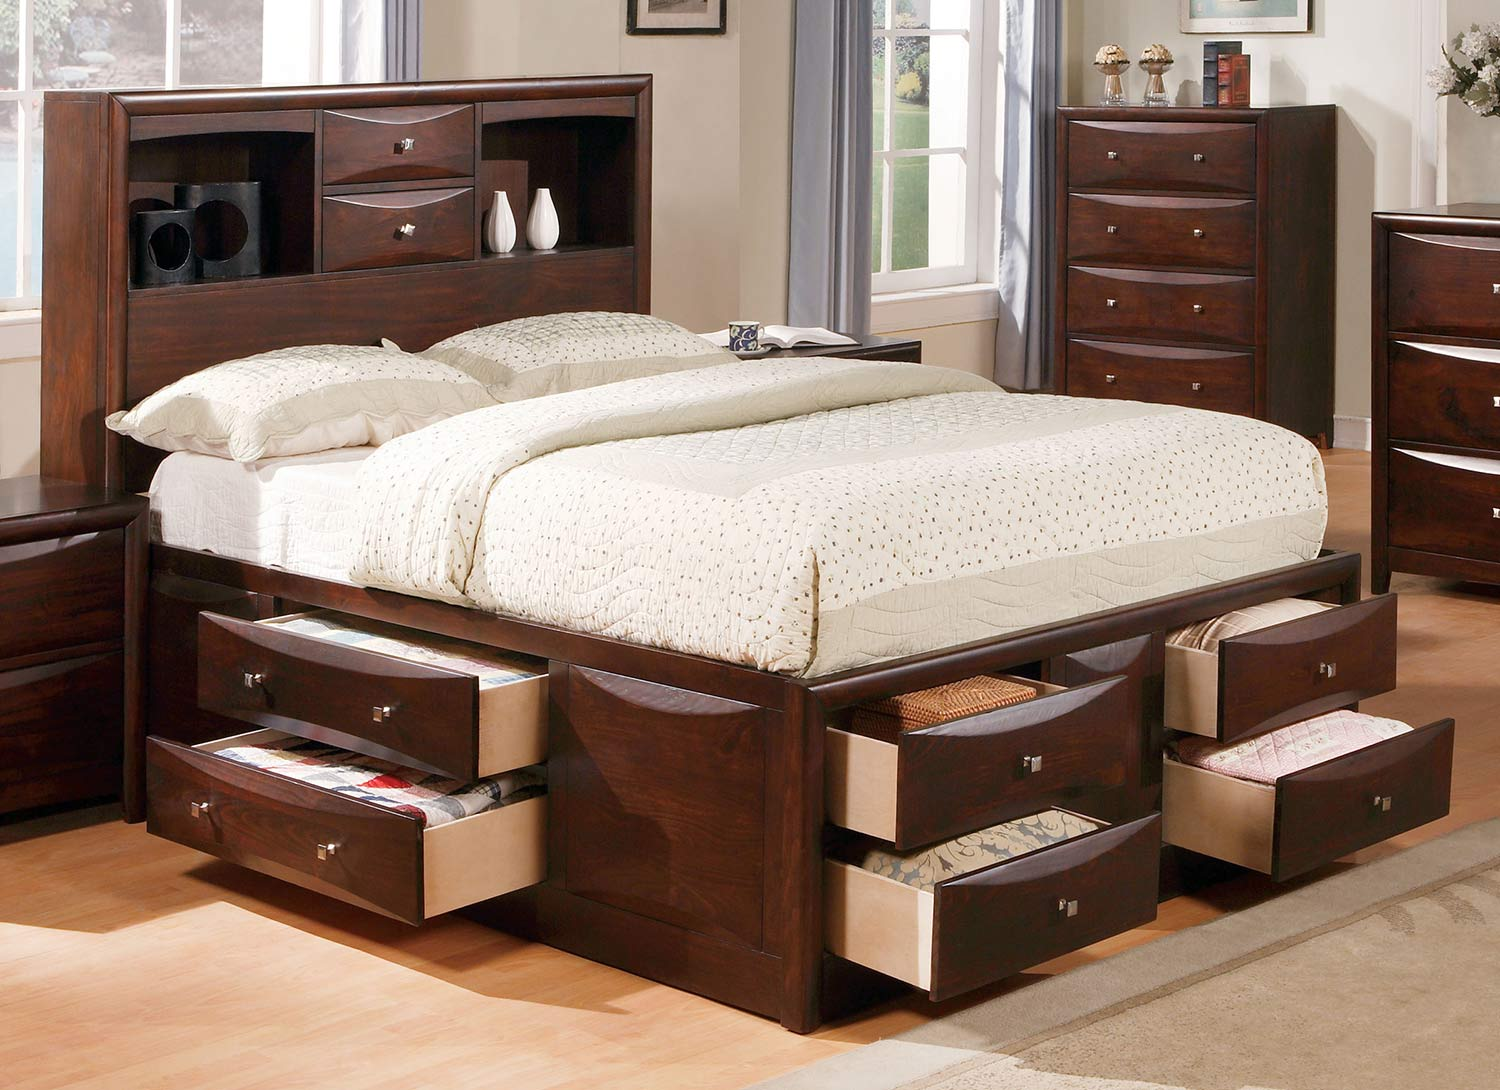 Acme Manhattan Bed with Storage - Espresso